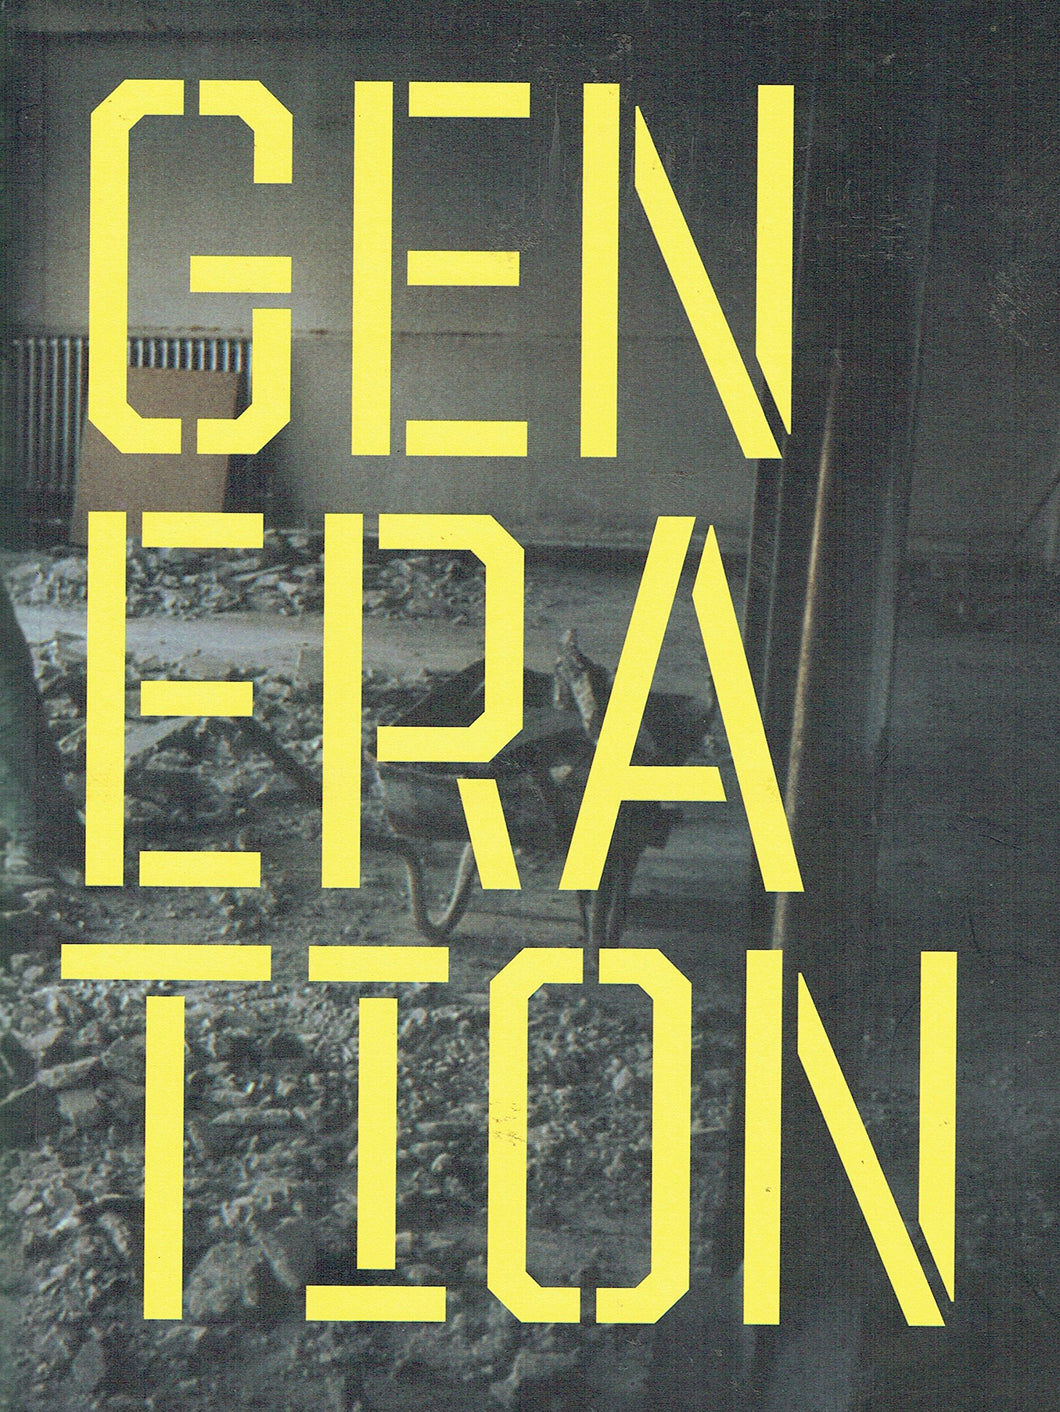 Generation: 30 Years of Creativity at Temple Bar Gallery and Studios, 1983-2013